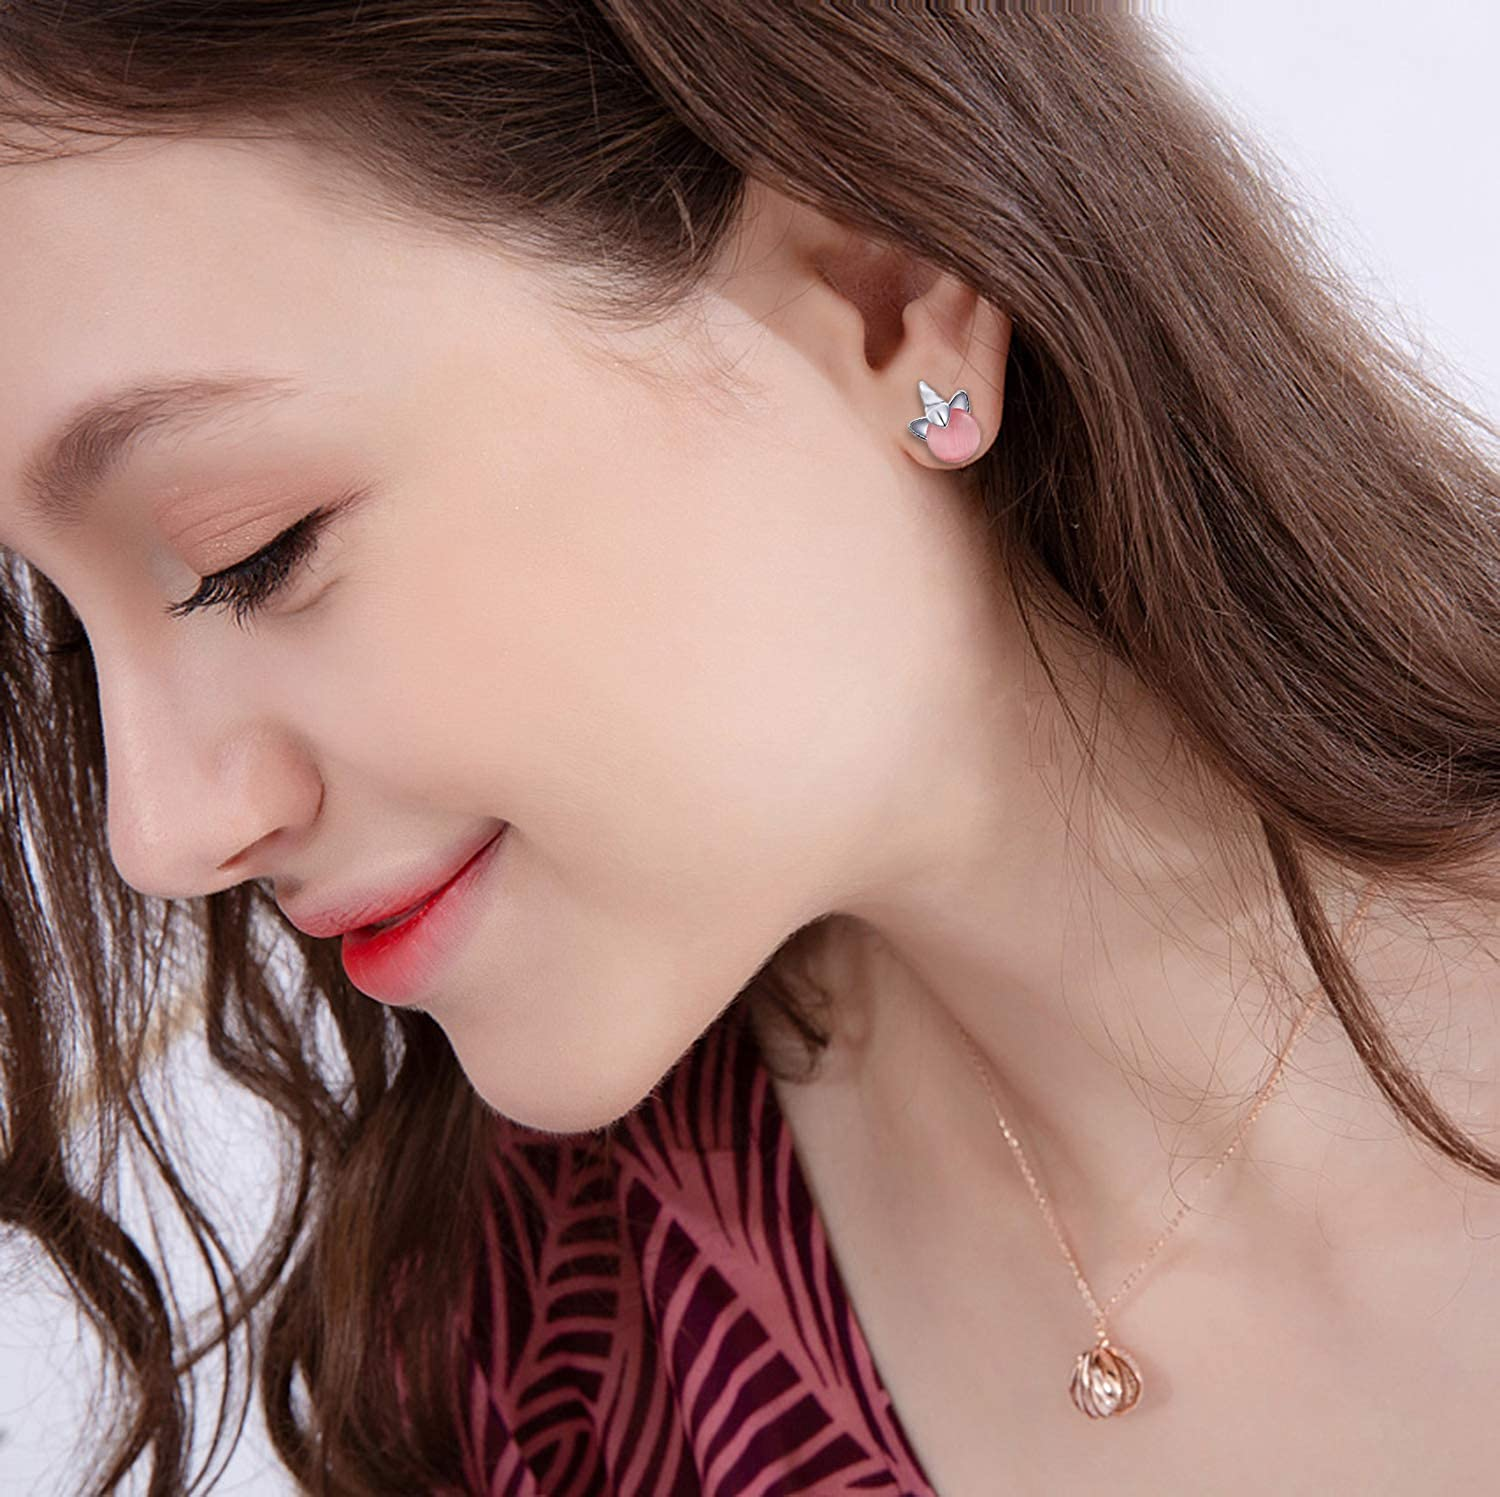 Hypoallergenic Stud Earrings for Young Women-Unique Fairy earrings Faux Pearl Earrings Pink CZ Cat Stud Earrings for Teens #2 HYZ 30 Pairs Assorted Stainless Steel Stud Earrings for Teen Girls